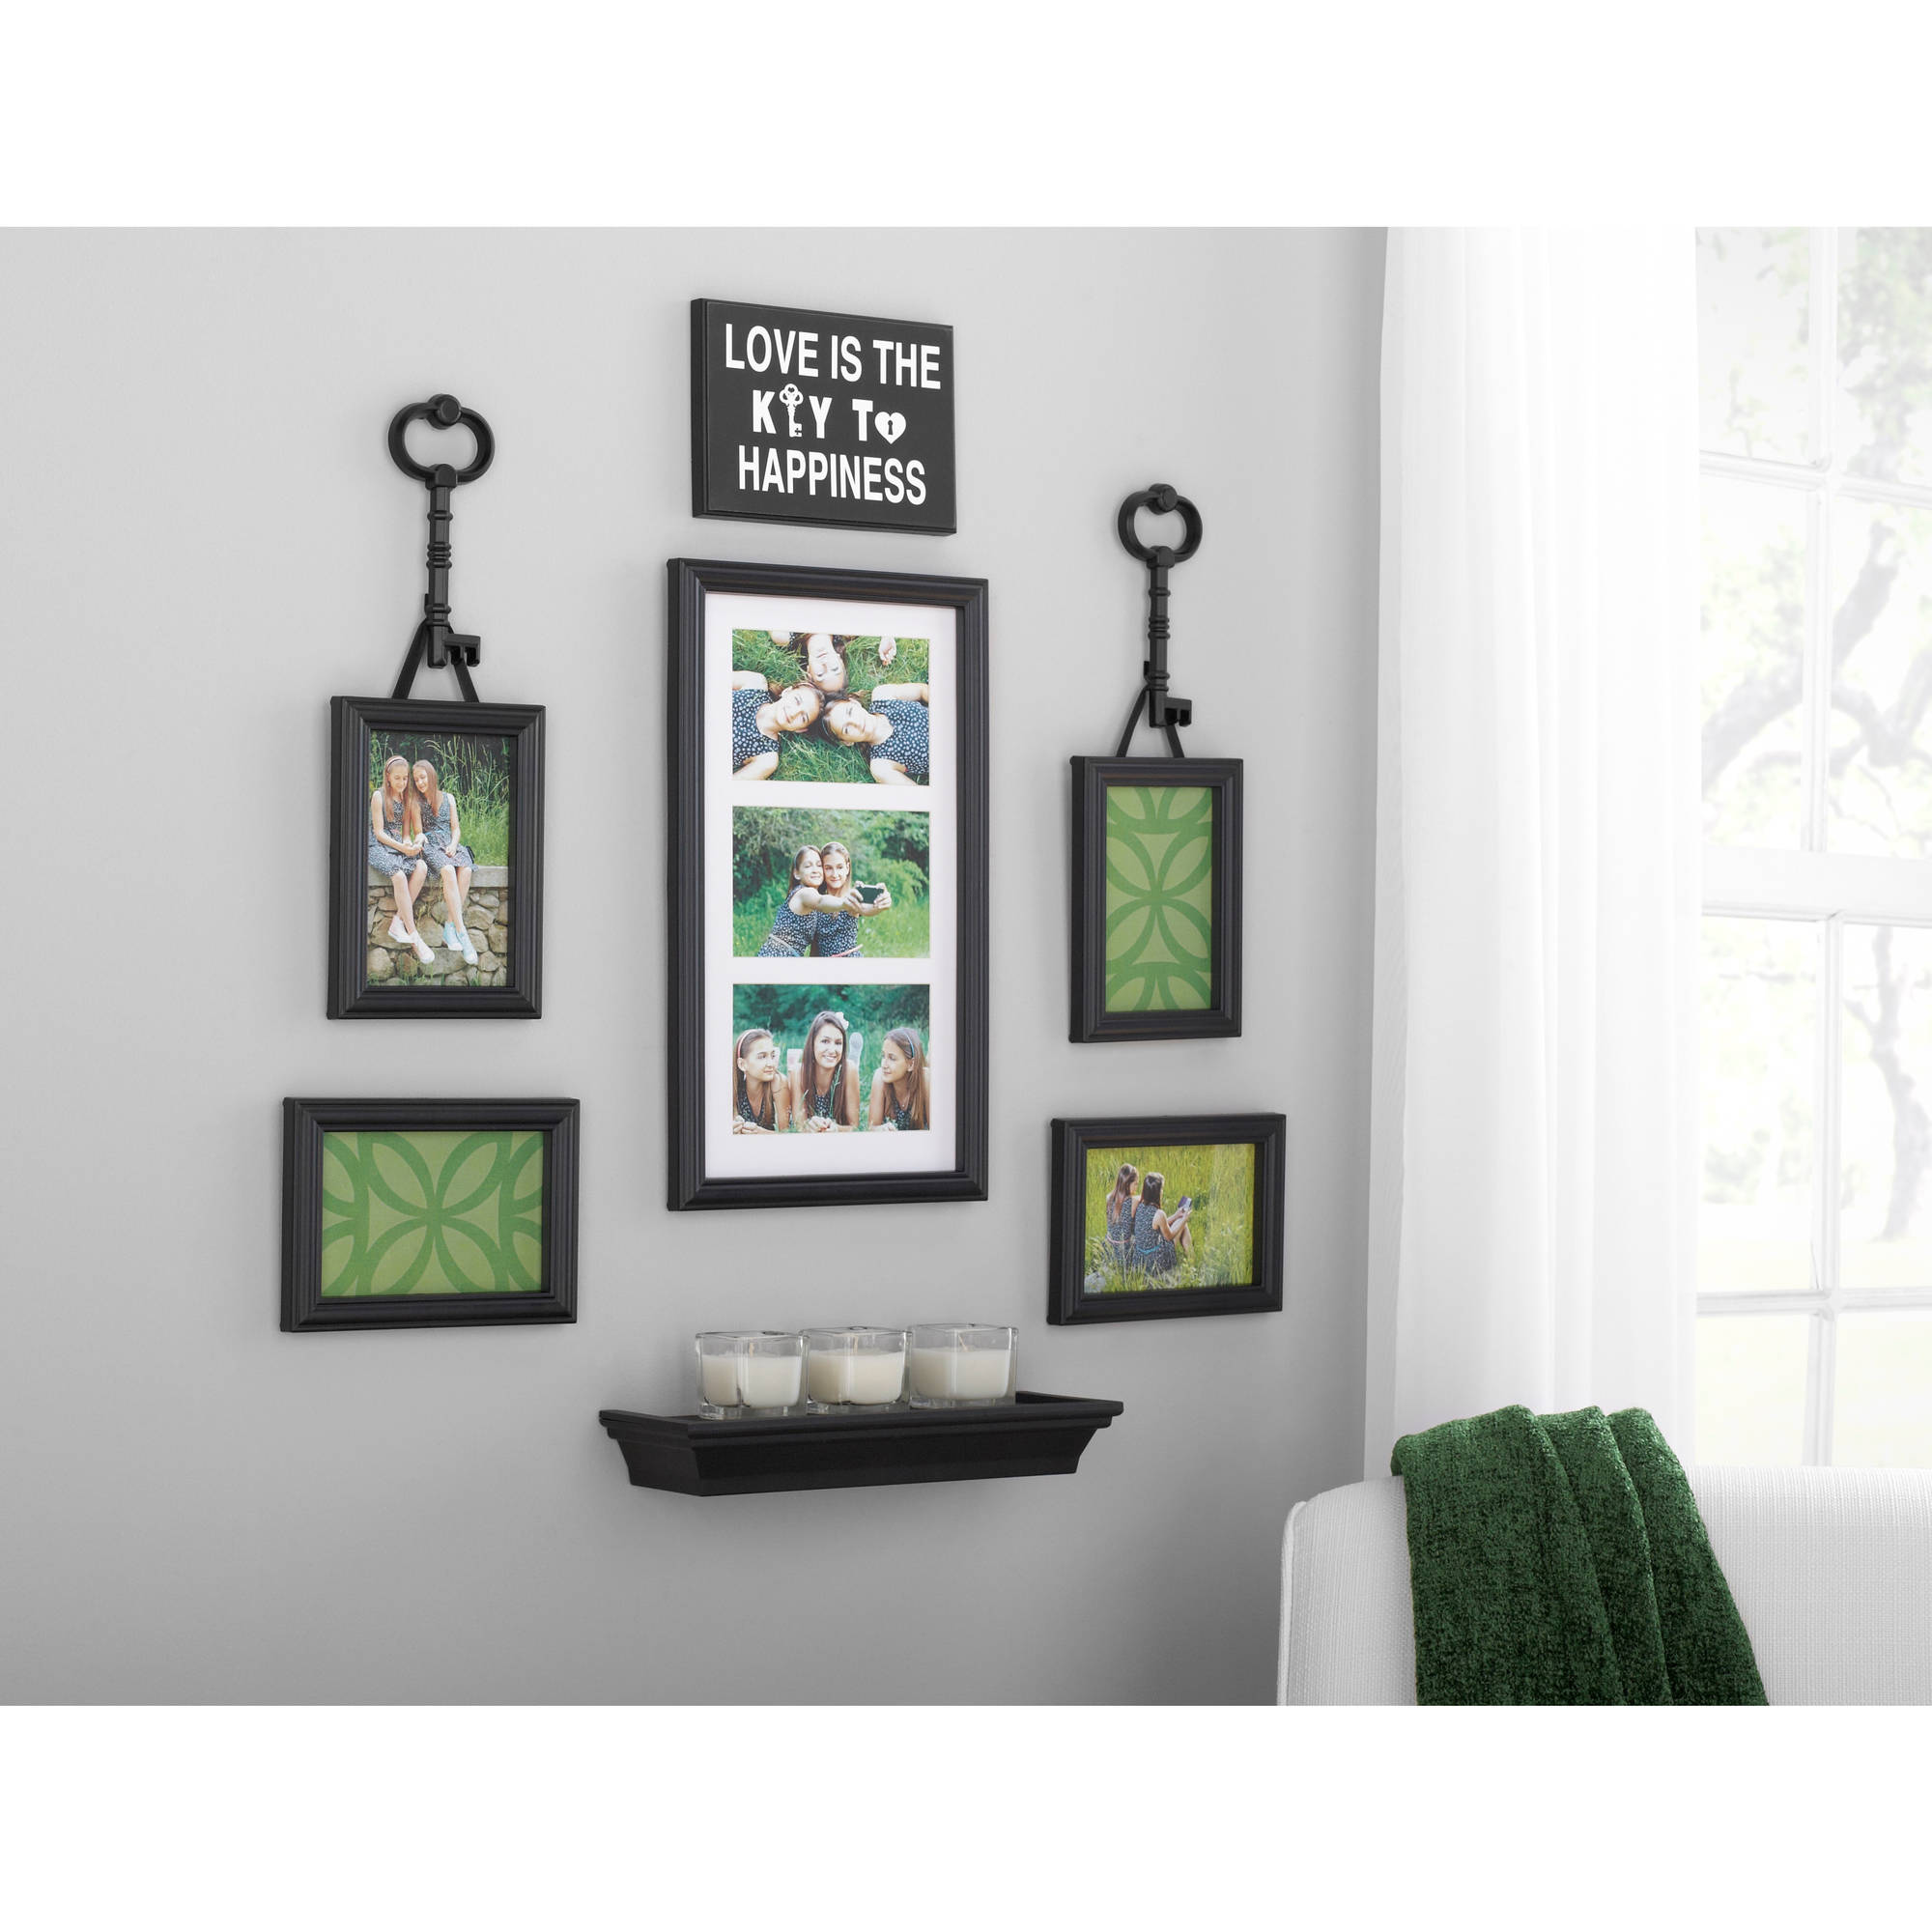 Mainstays 9-Piece Key Expression Wall Frame Set - Walmart.com